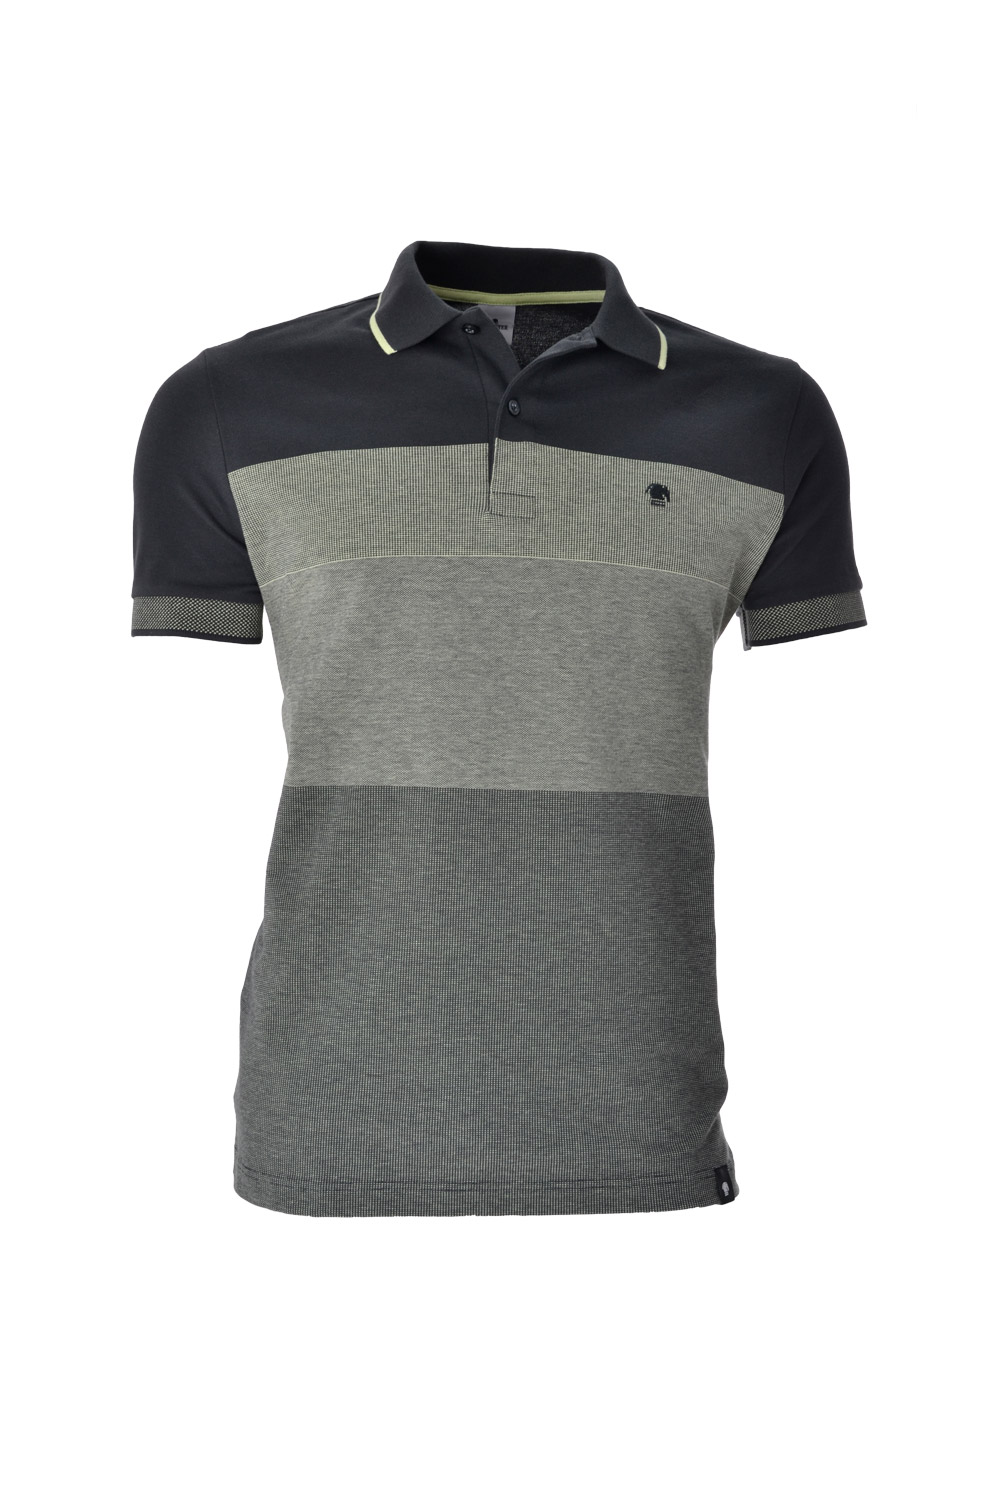 POLO MC CASUAL ALGODAO & ELASTANO BINADO STRETCH PIQUET COMPOSE